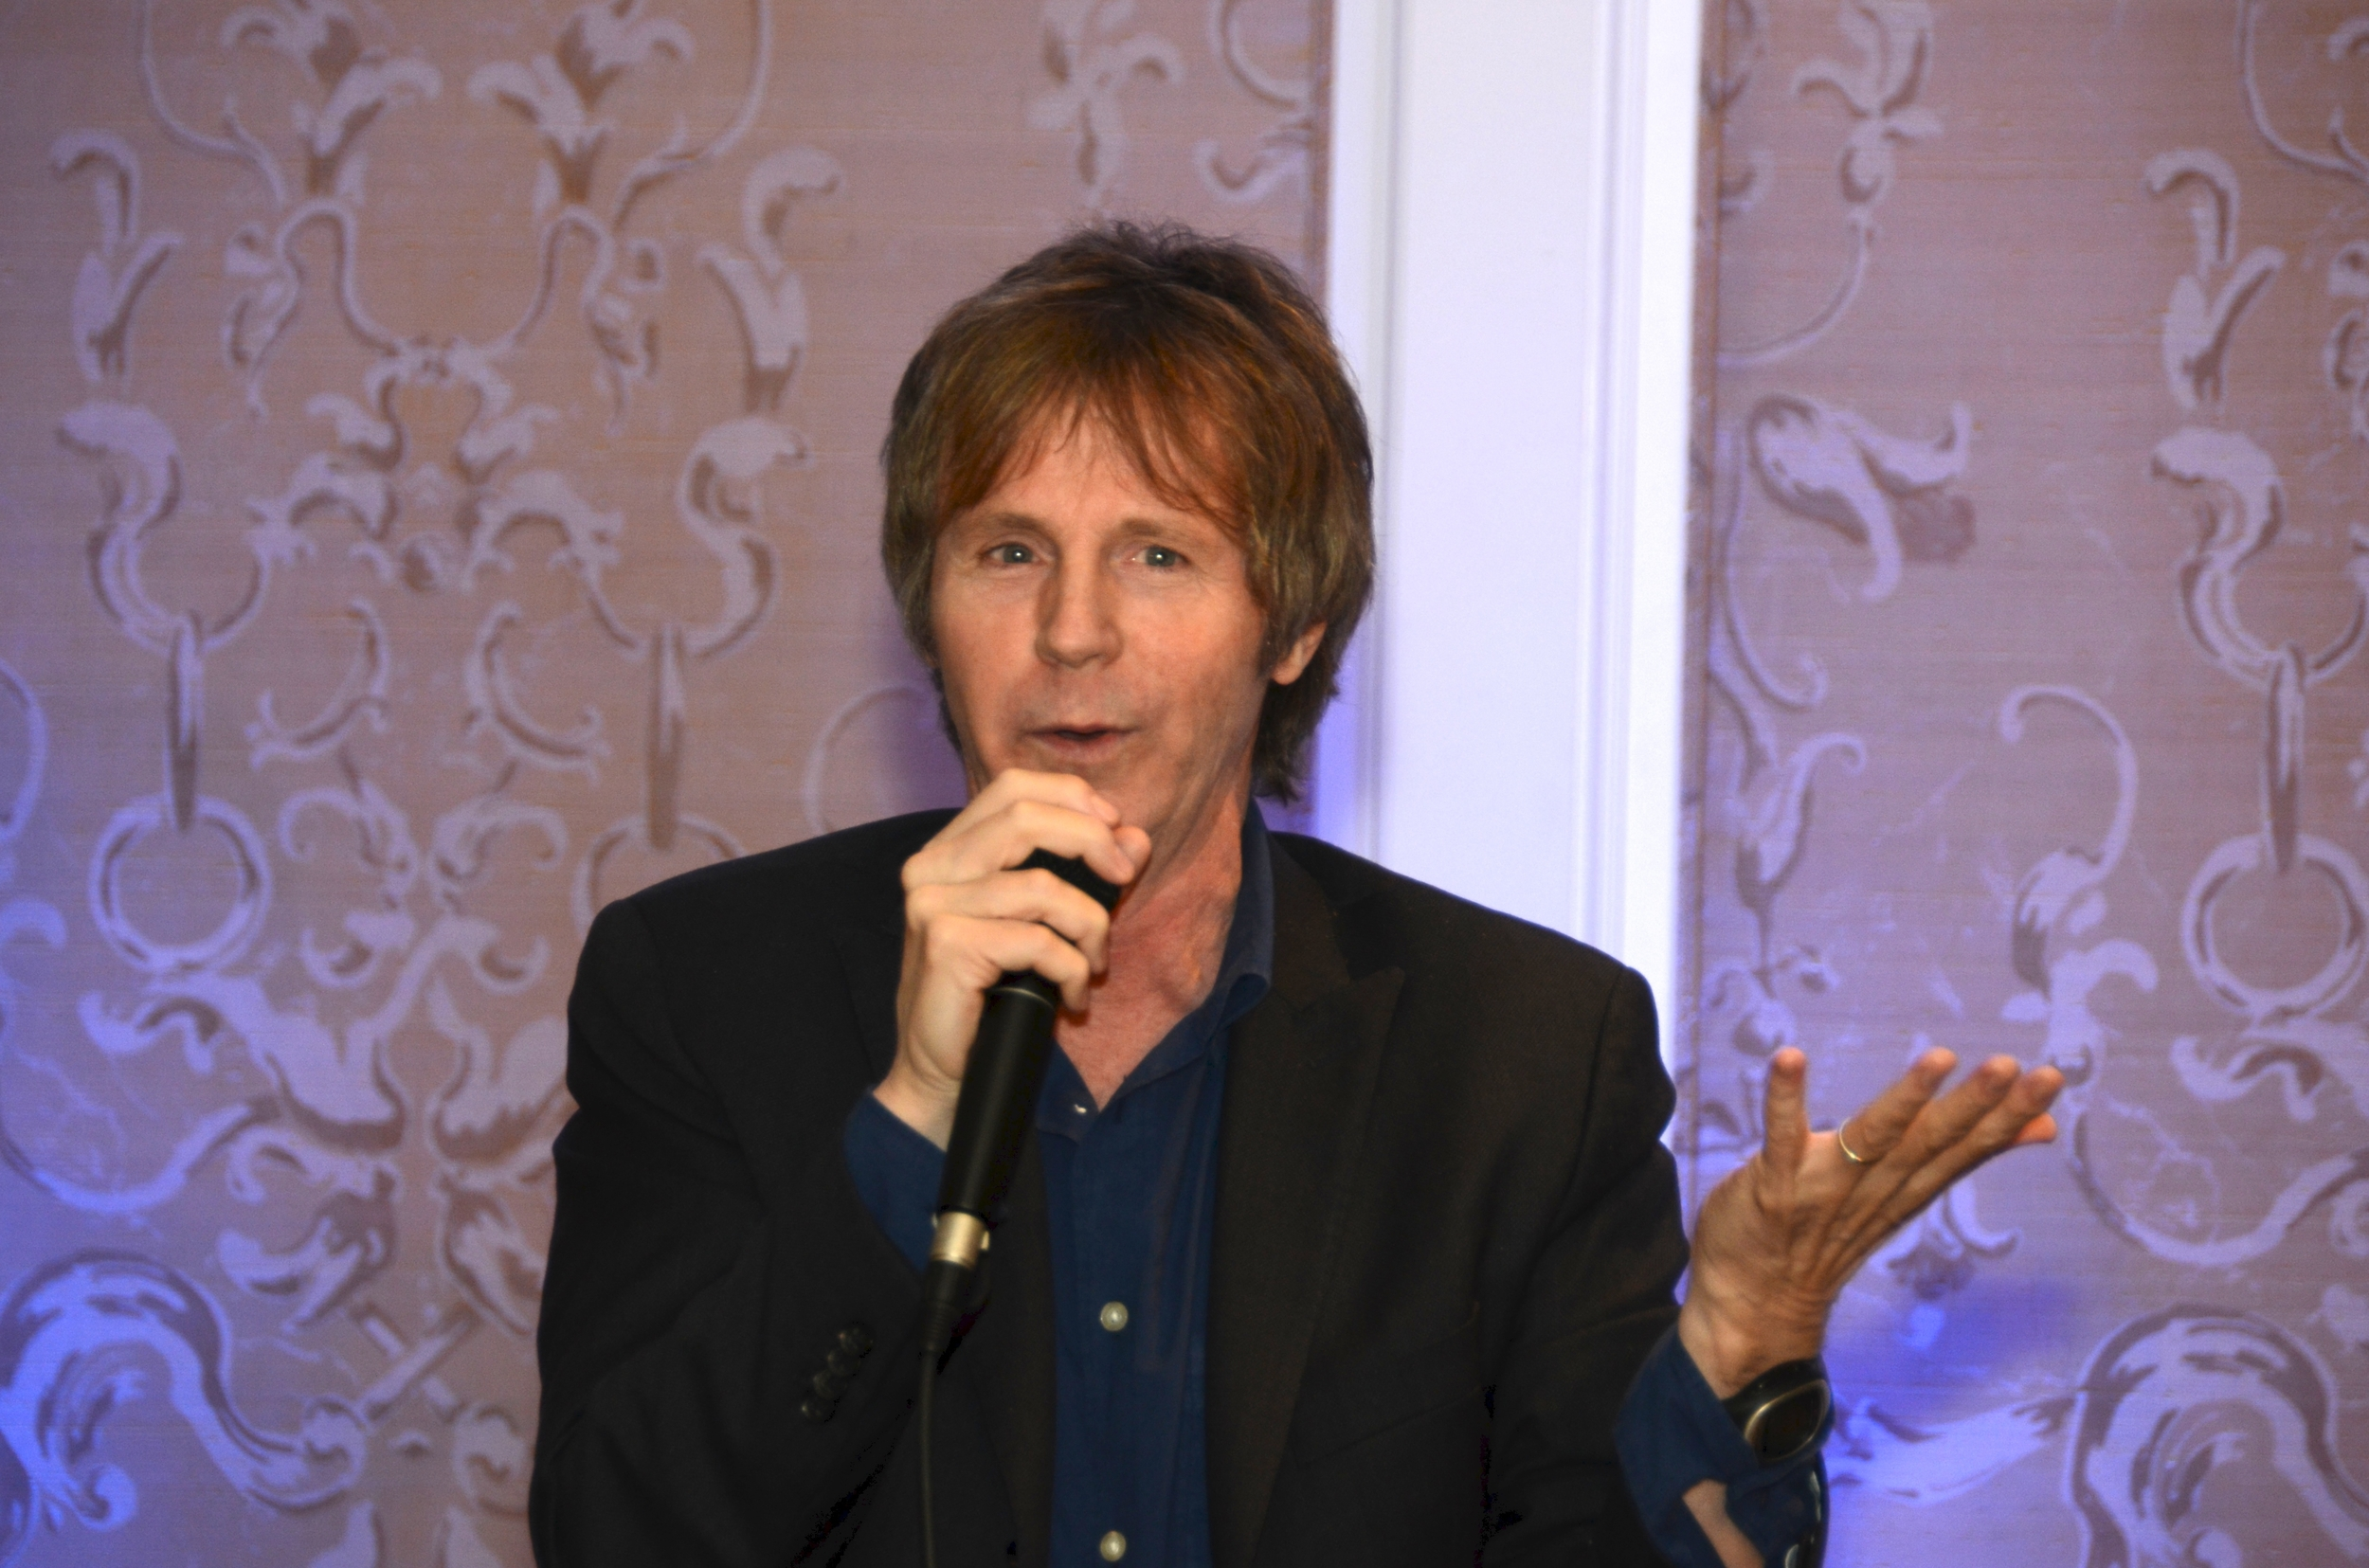 Broach Foundation Gala_04302014_© Roswitha Vogler_199.jpg